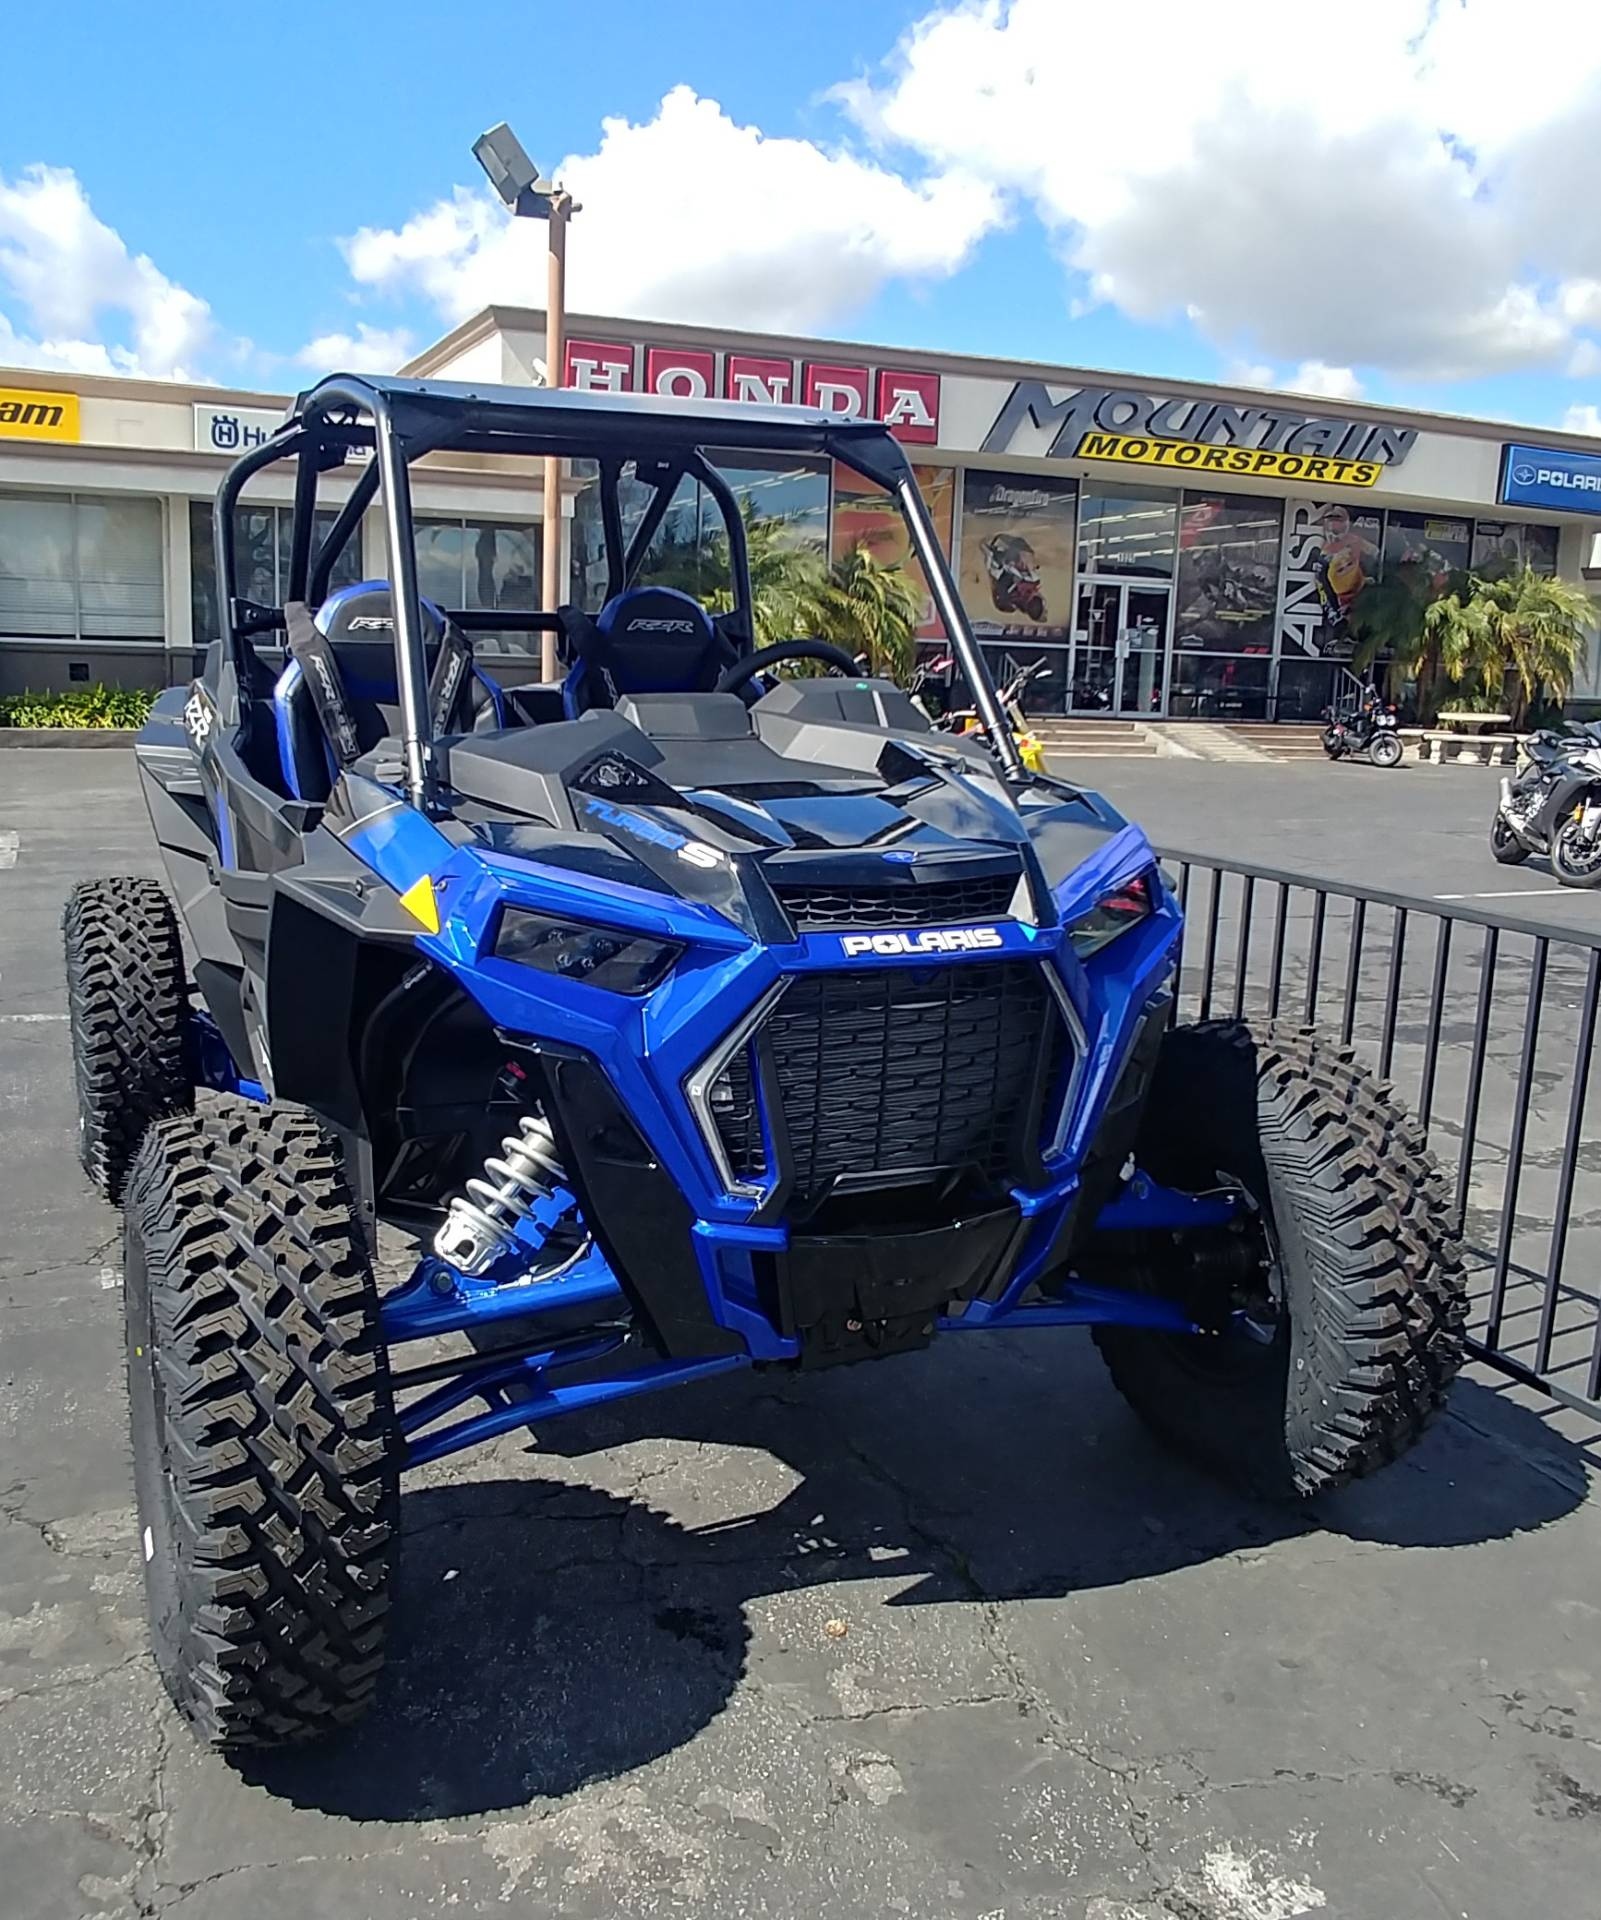 2019 Polaris RZR XP Turbo S in Ontario, California - Photo 6